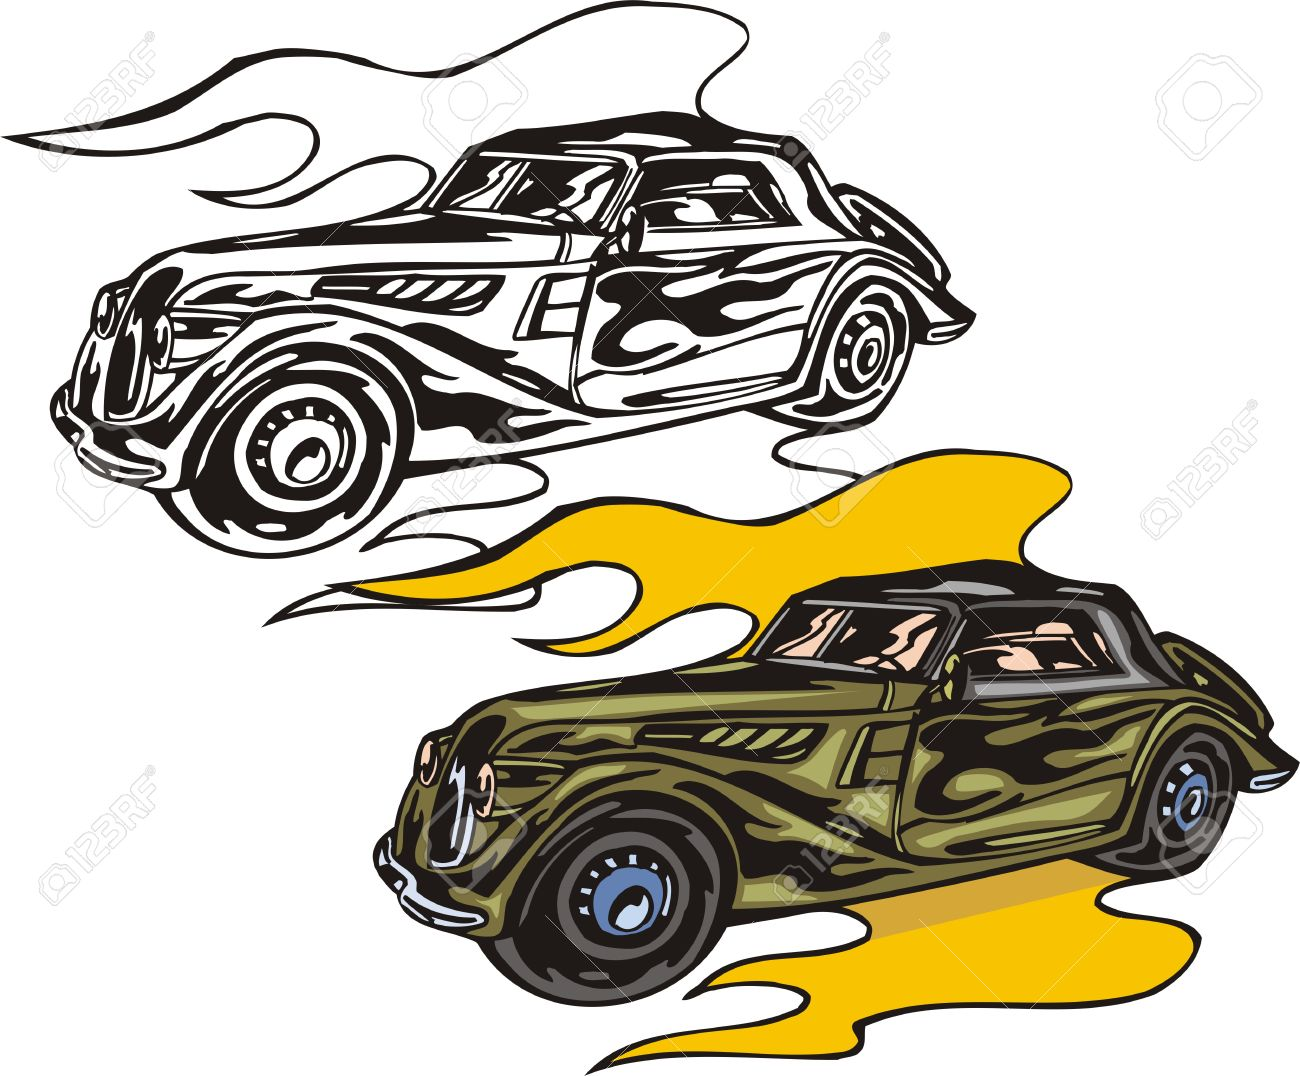 Flaming car clipart png black and white stock The Green Car On Yellow Fire. Flaming Hotrods. Illustration ... png black and white stock